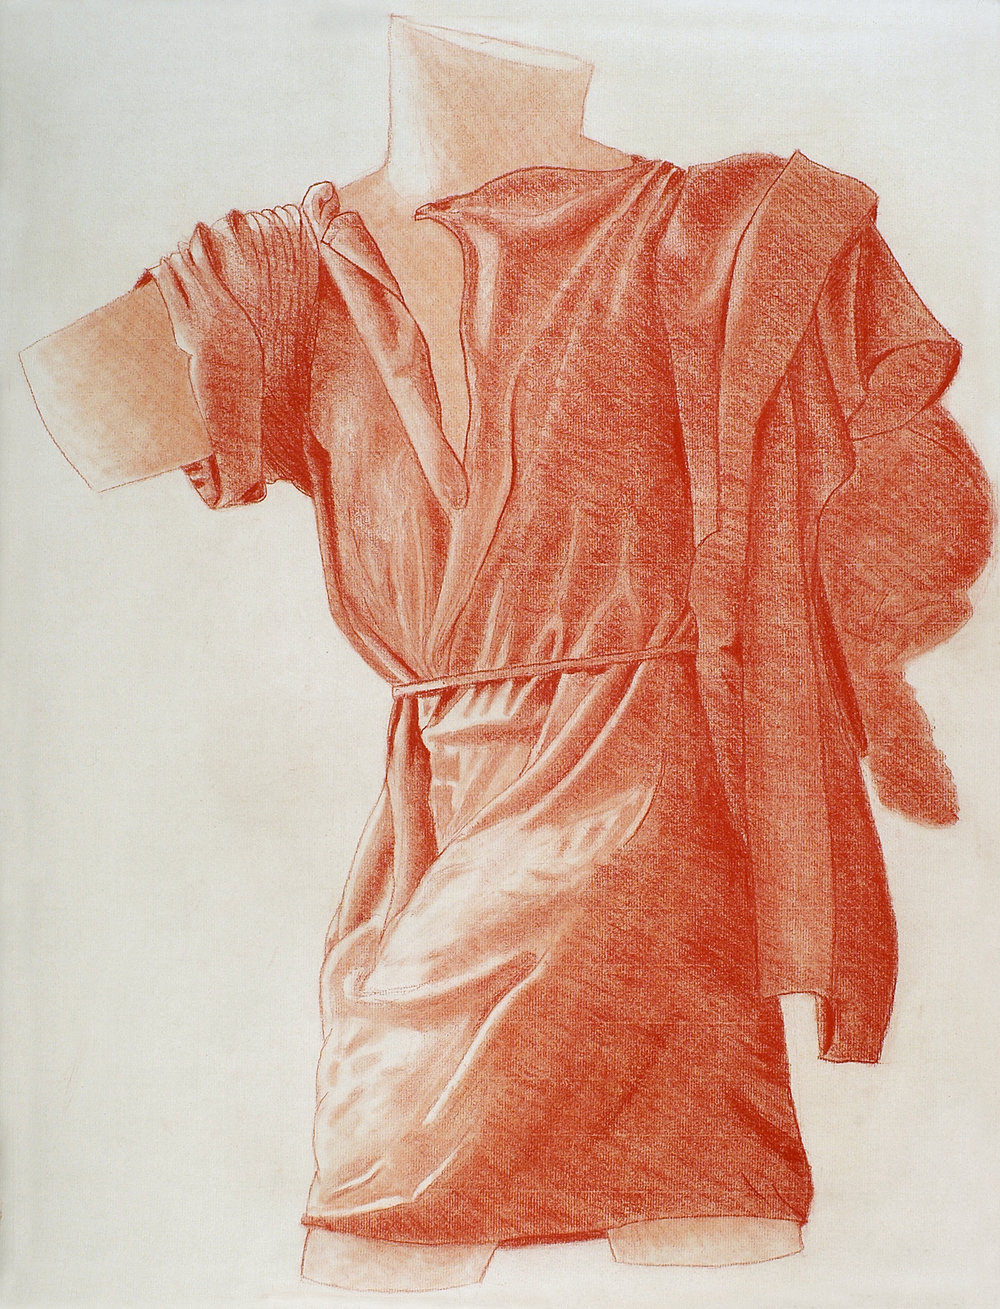 Drapery Study in red chalk